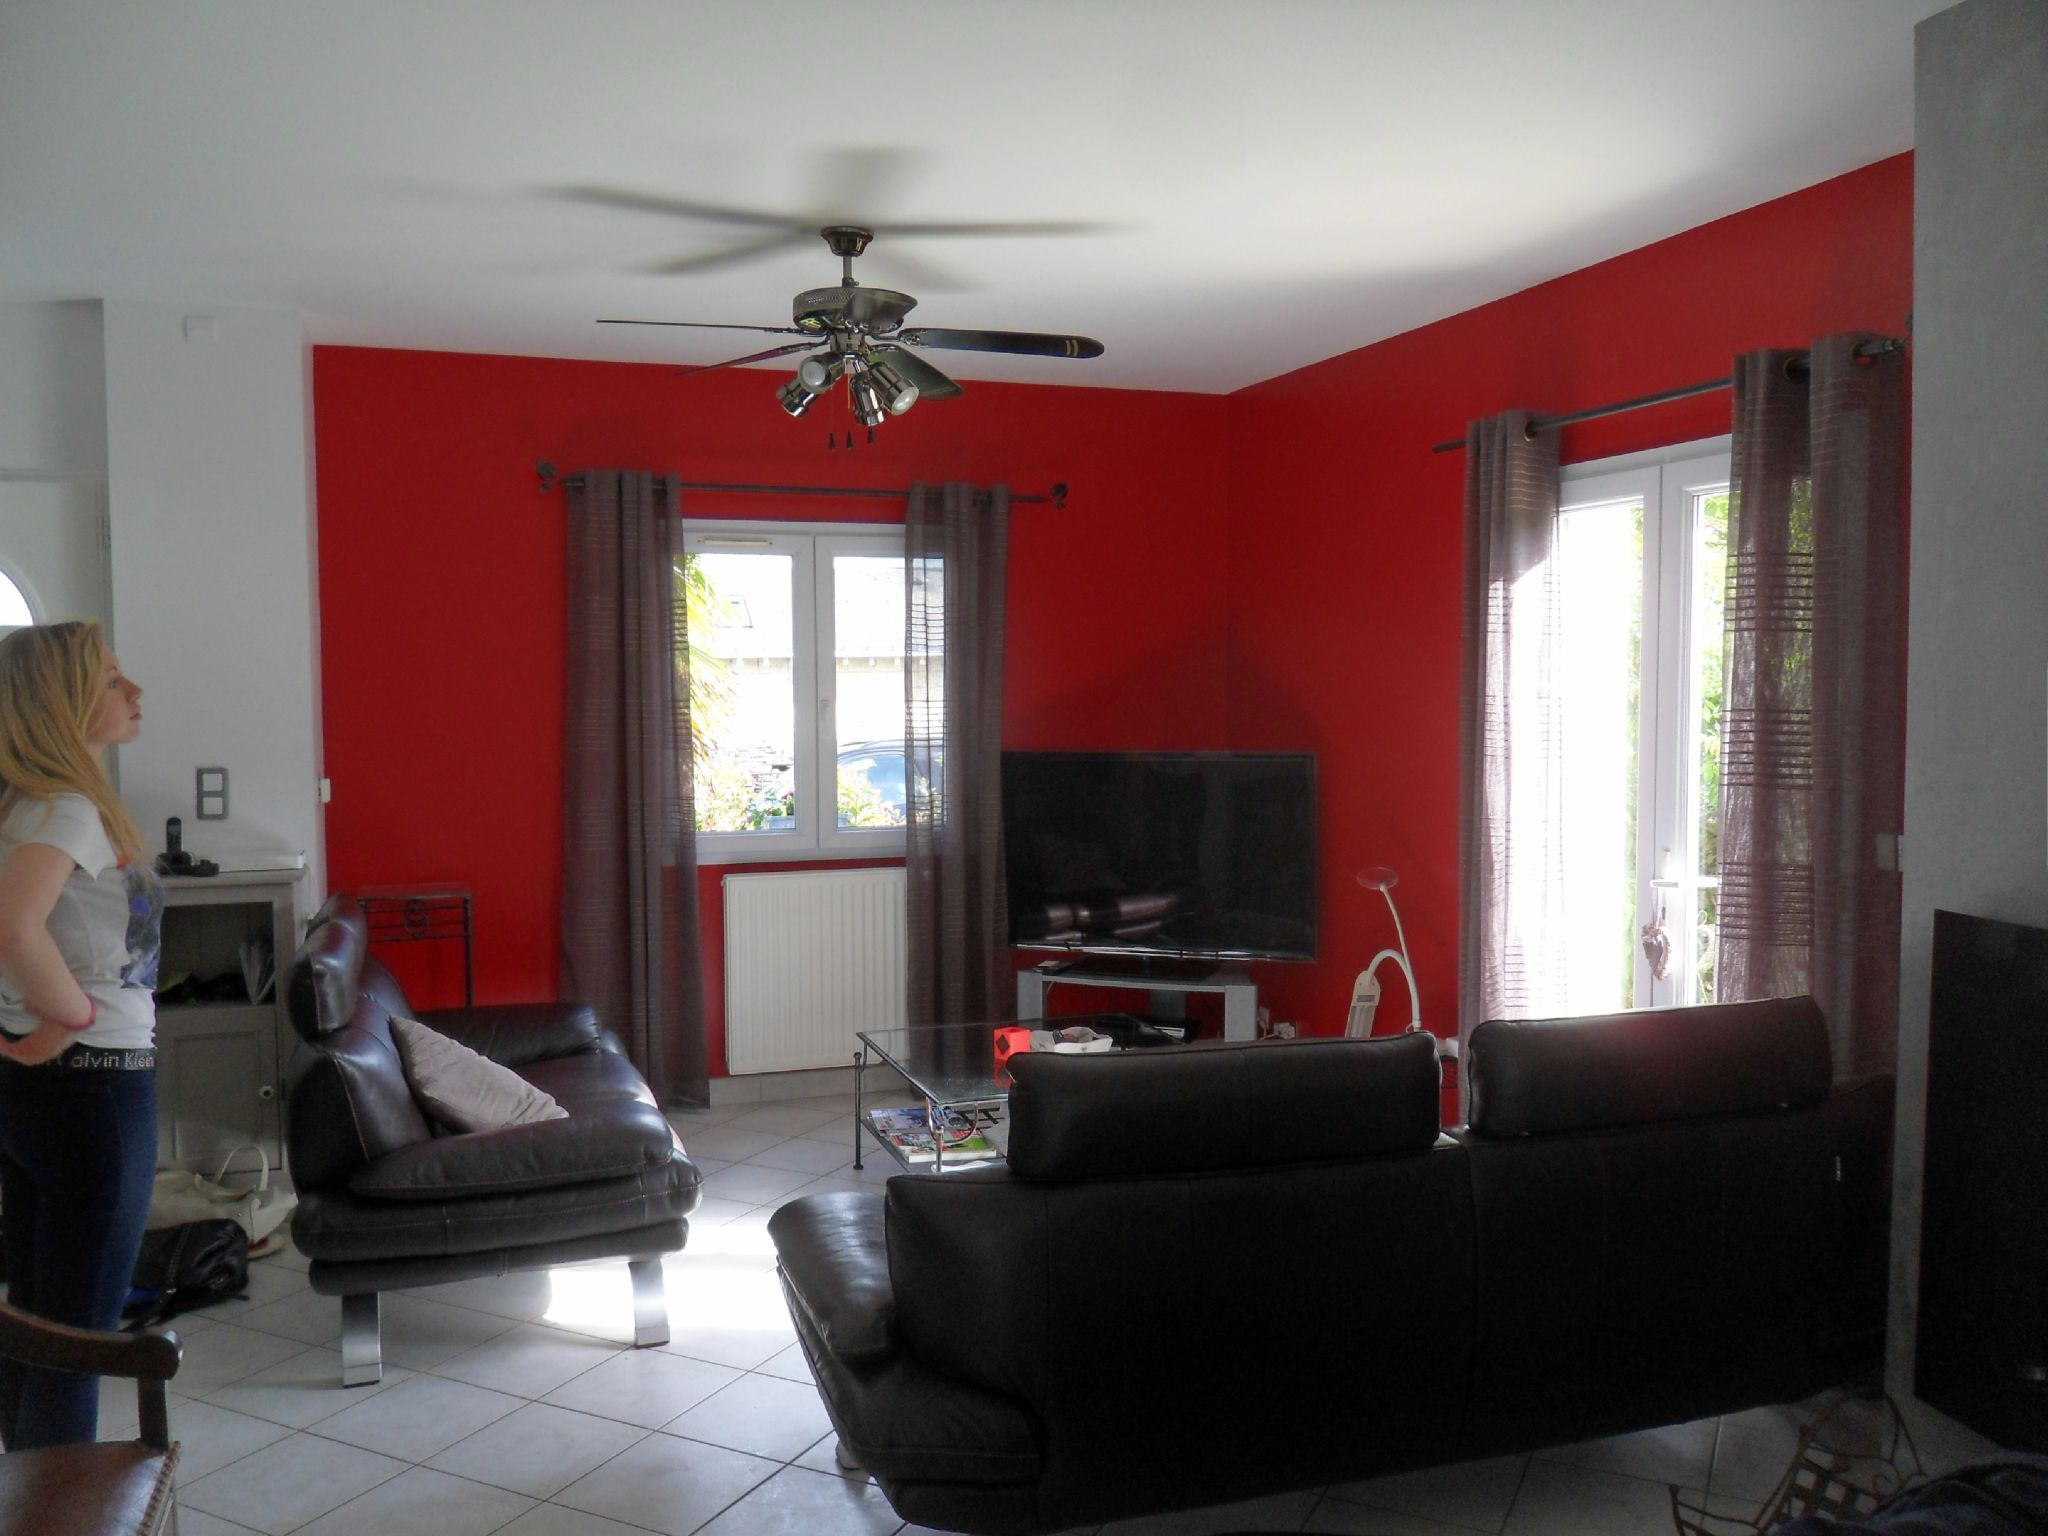 Decoration mur rouge - Deco salon gris rouge ...